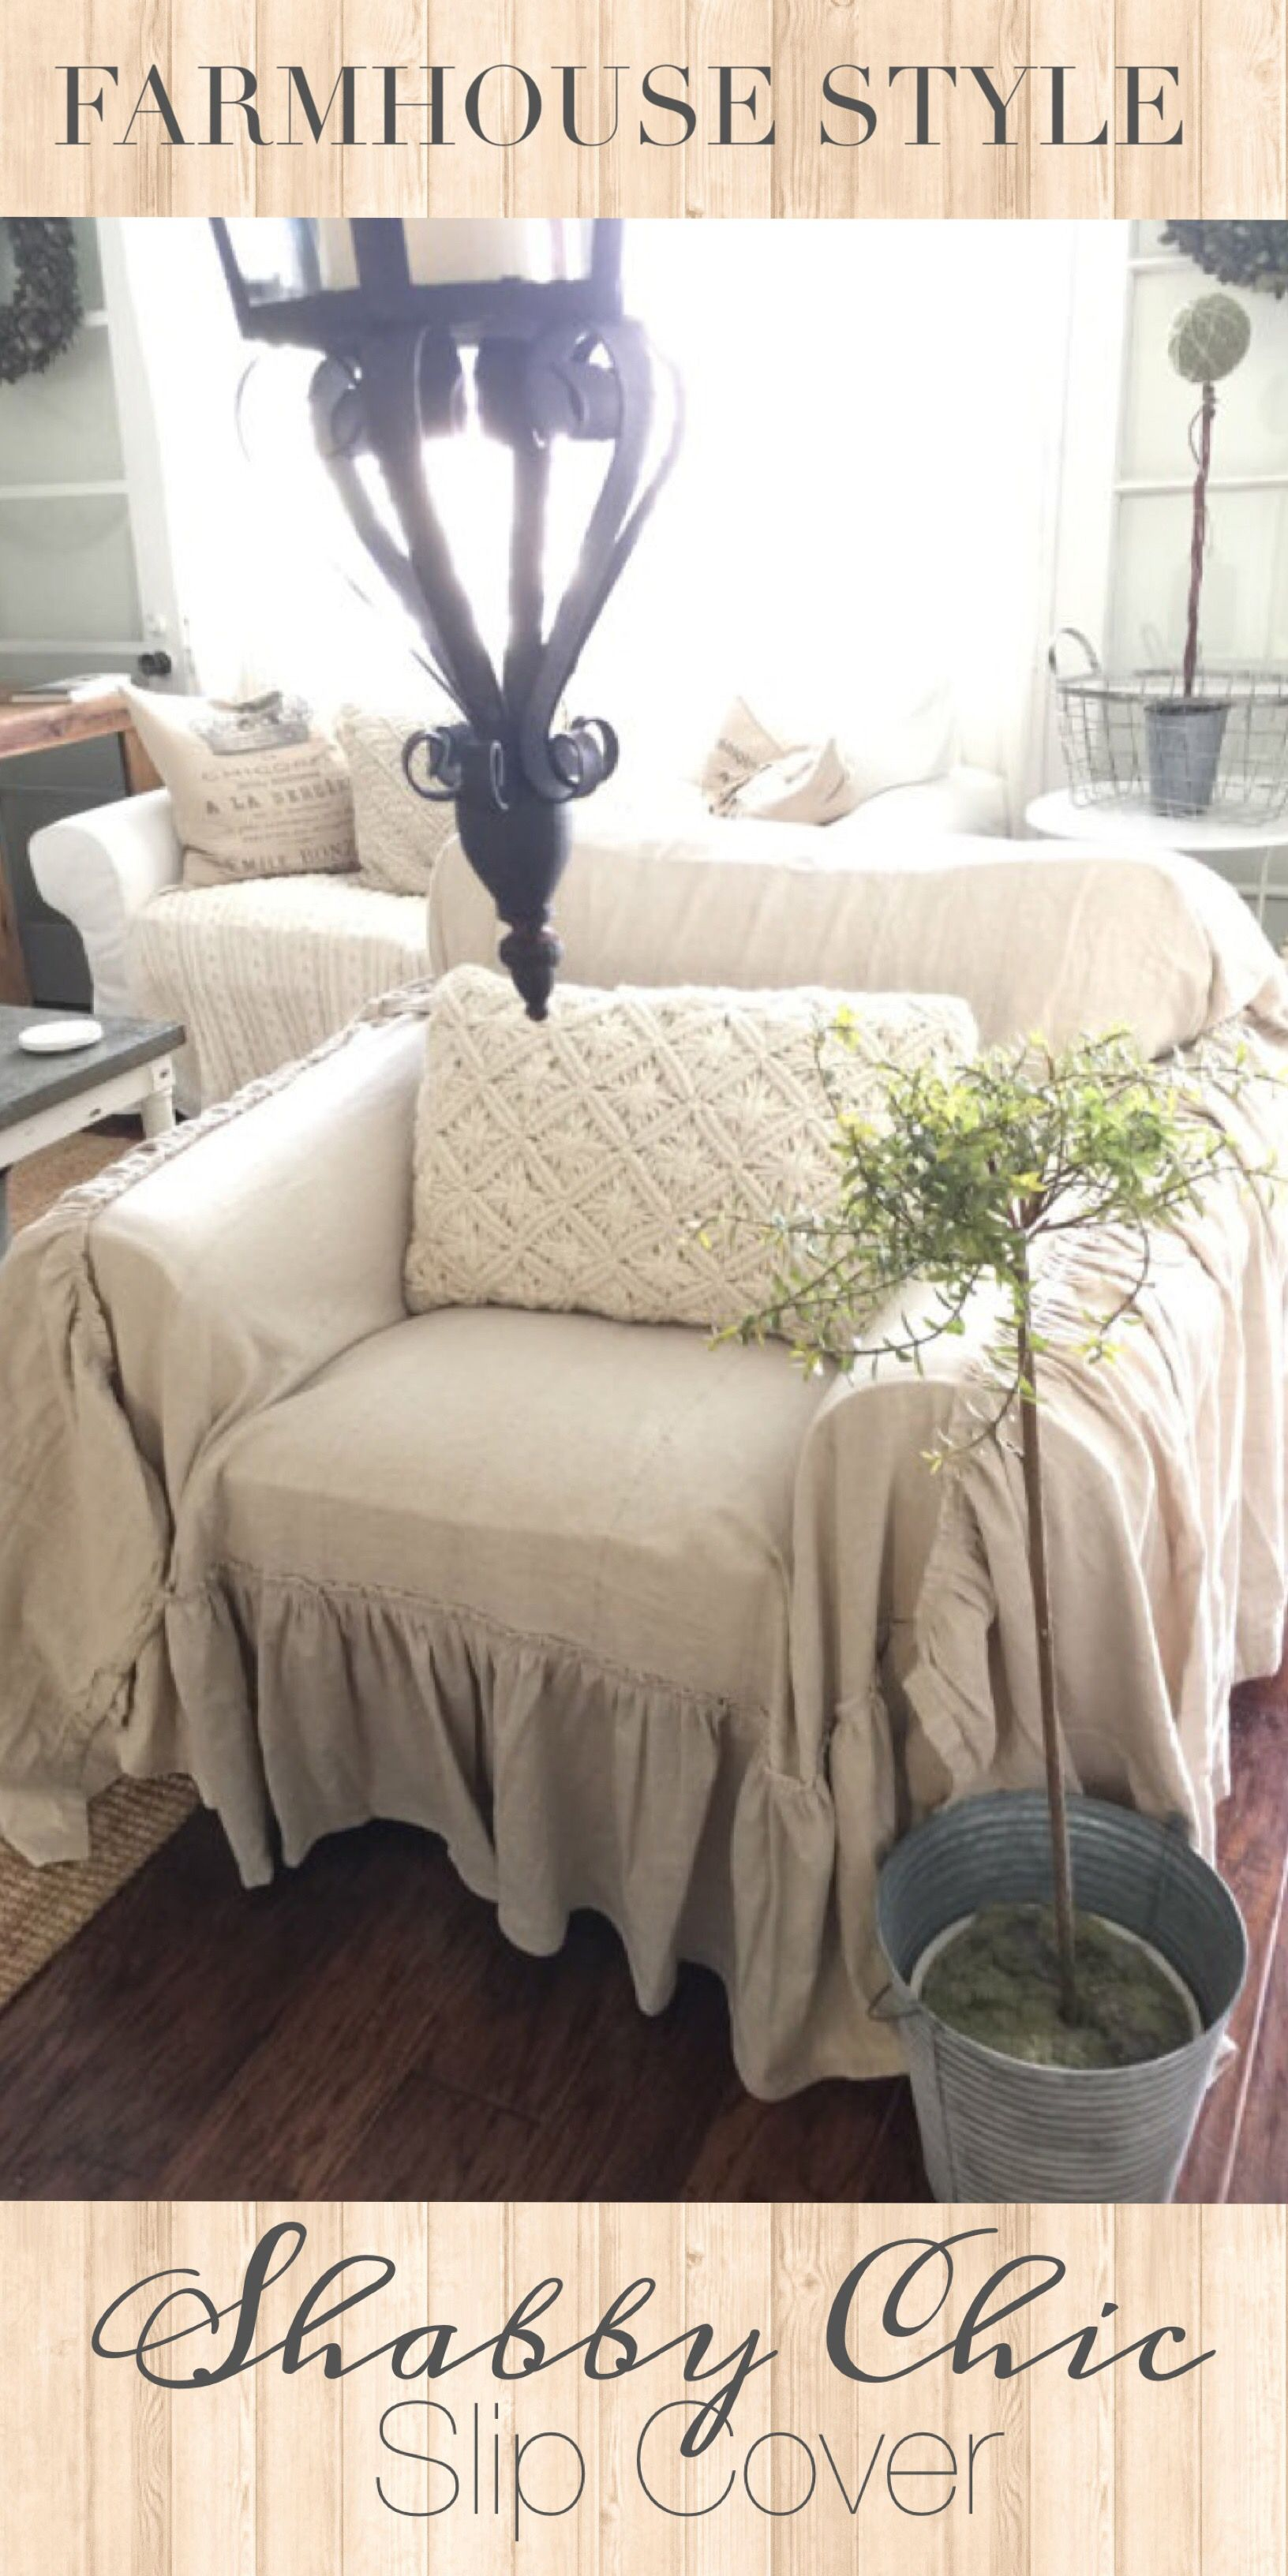 cover my furniture. Gorgeous Shabby Chic Slip Cover! #ad Oh My Goodness Is This Not The Most Beautiful Thing You Have Seen Today?! Love Mix Of Farmhouse And Chic! Cover Furniture G